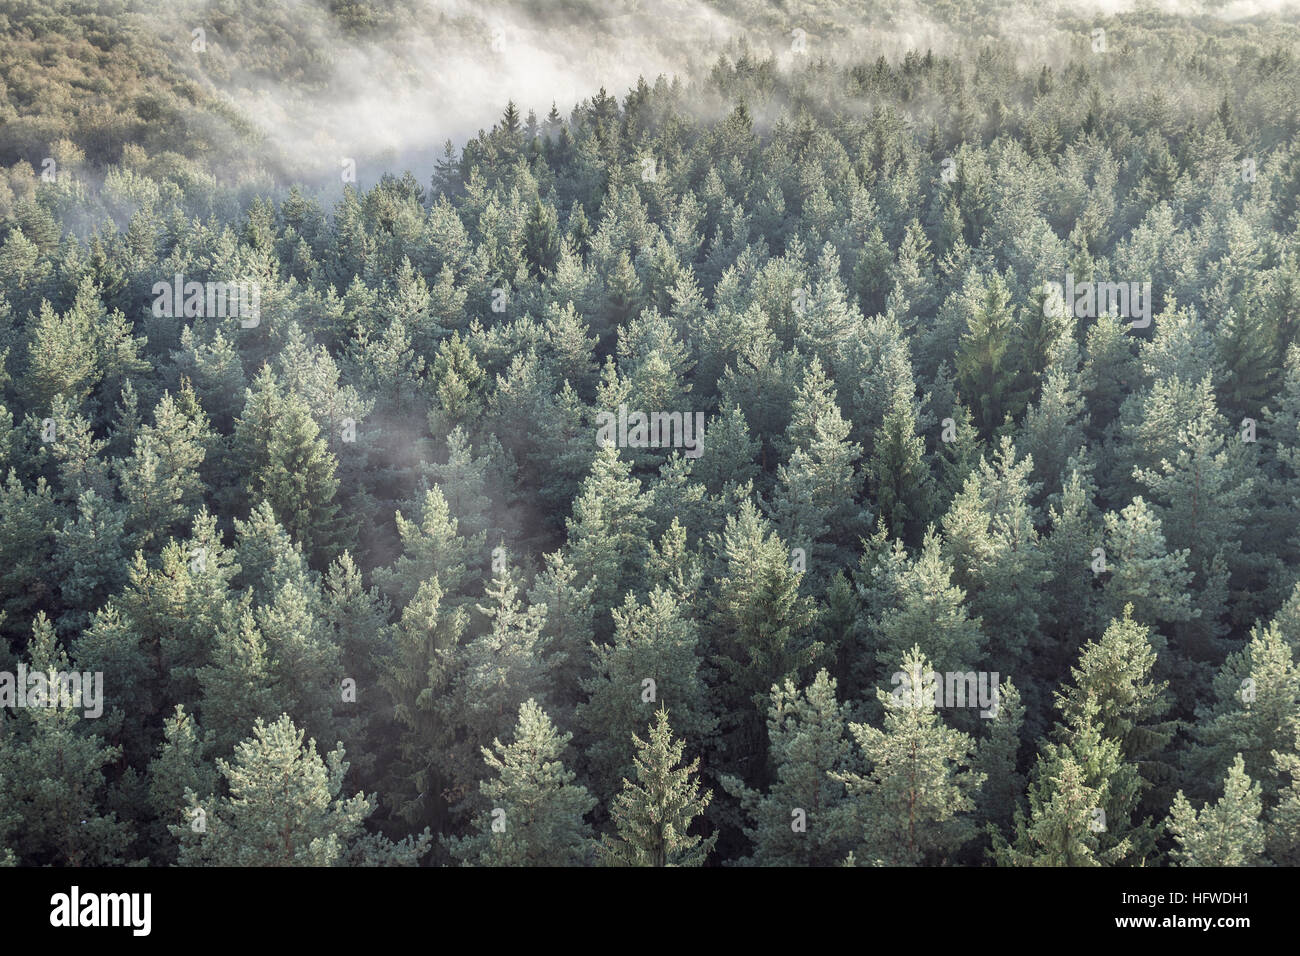 Panoramic view of misty coniferous wood forest in retro, vintage style. Foggy landscape with green spruces. - Stock Image